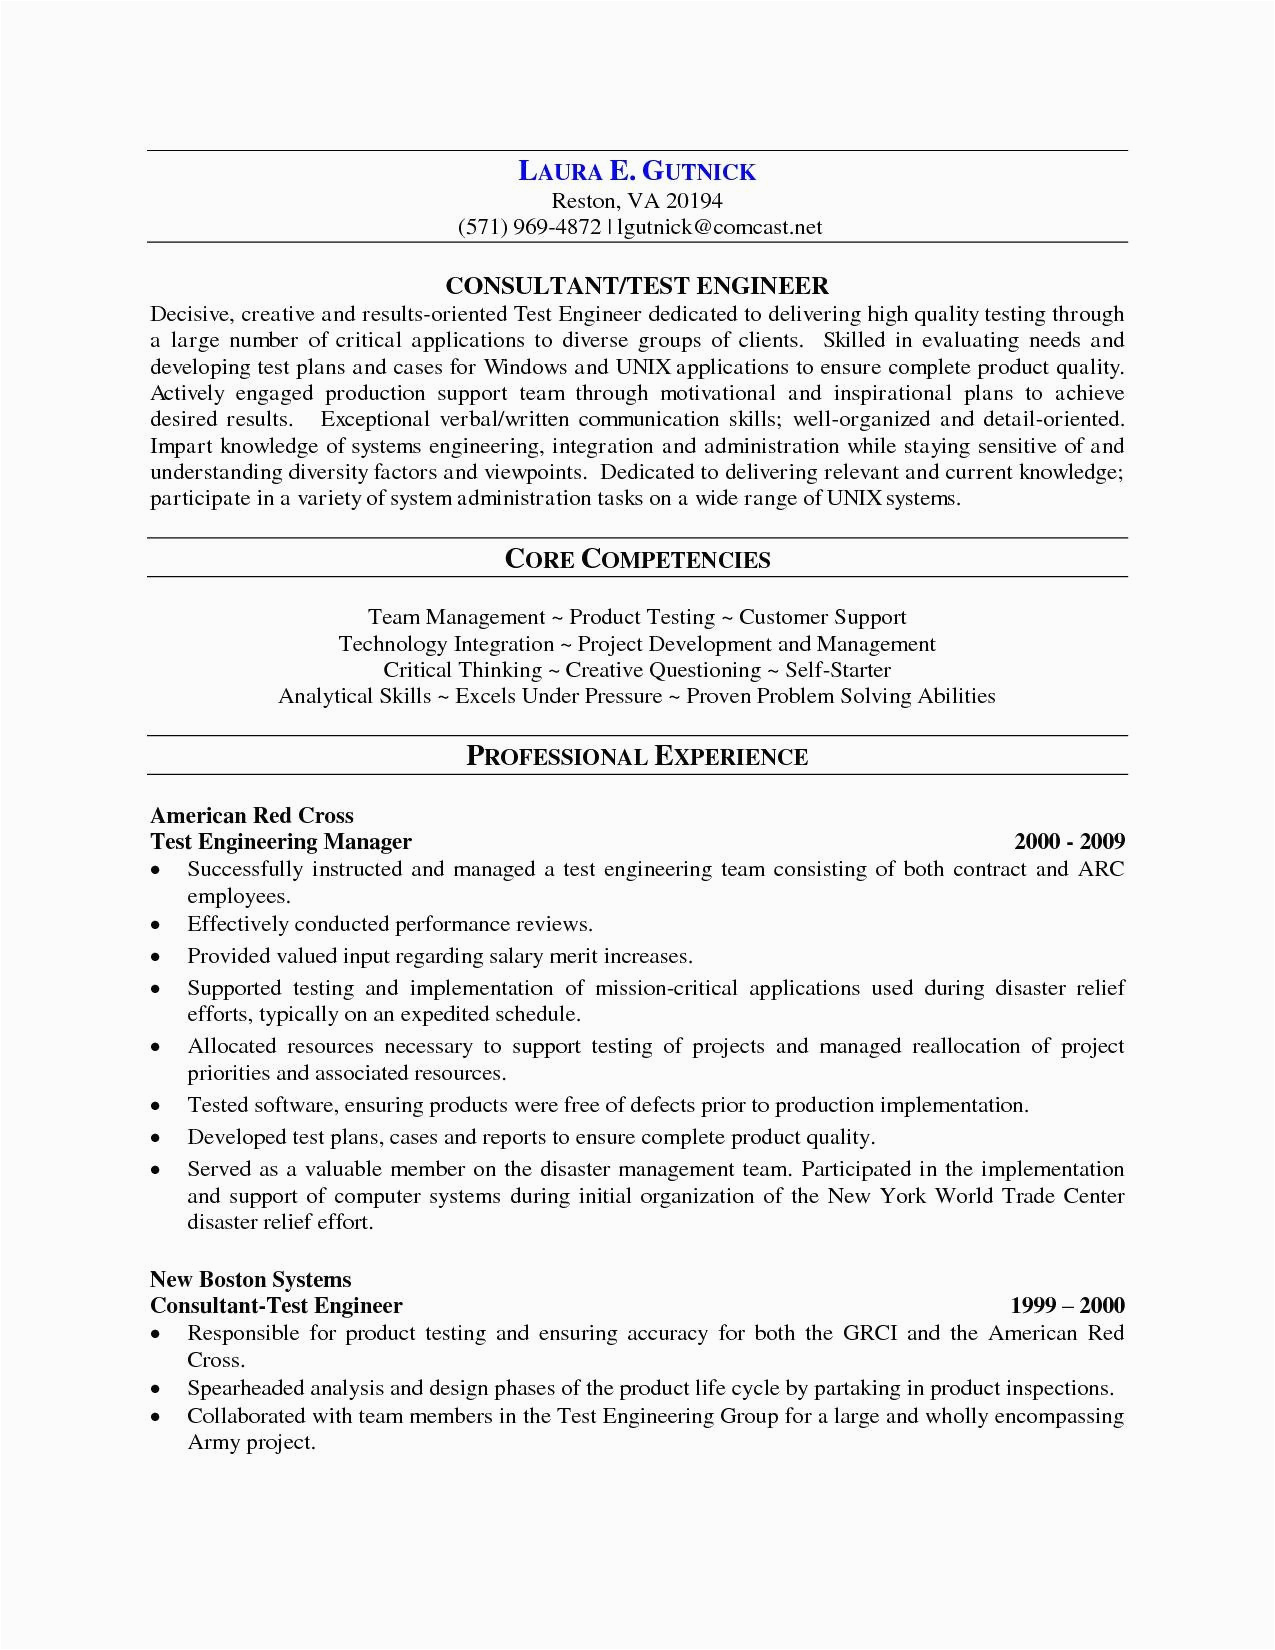 Software Testing Resume Samples for 2 Years Experience Sample Resume for software Tester 2 Years Experience